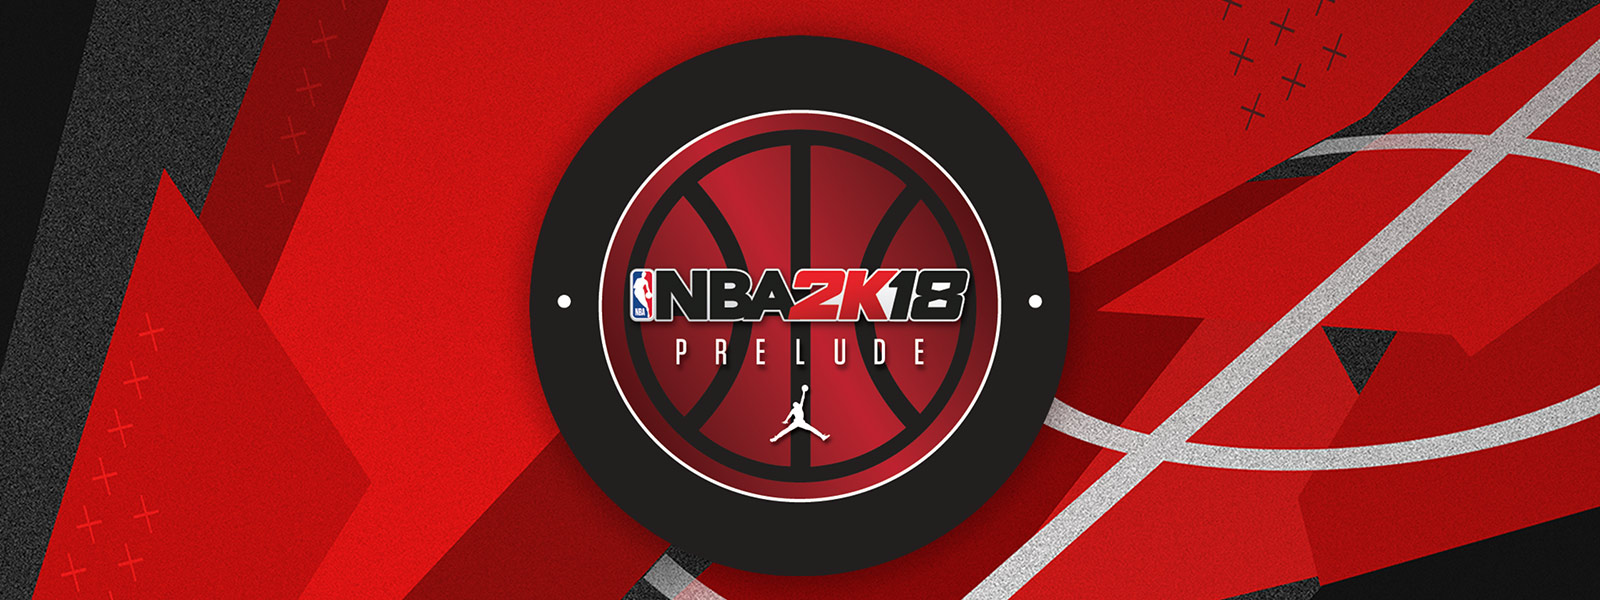 NBA 2K18: The Prelude, sobre un fondo abstracto rojo